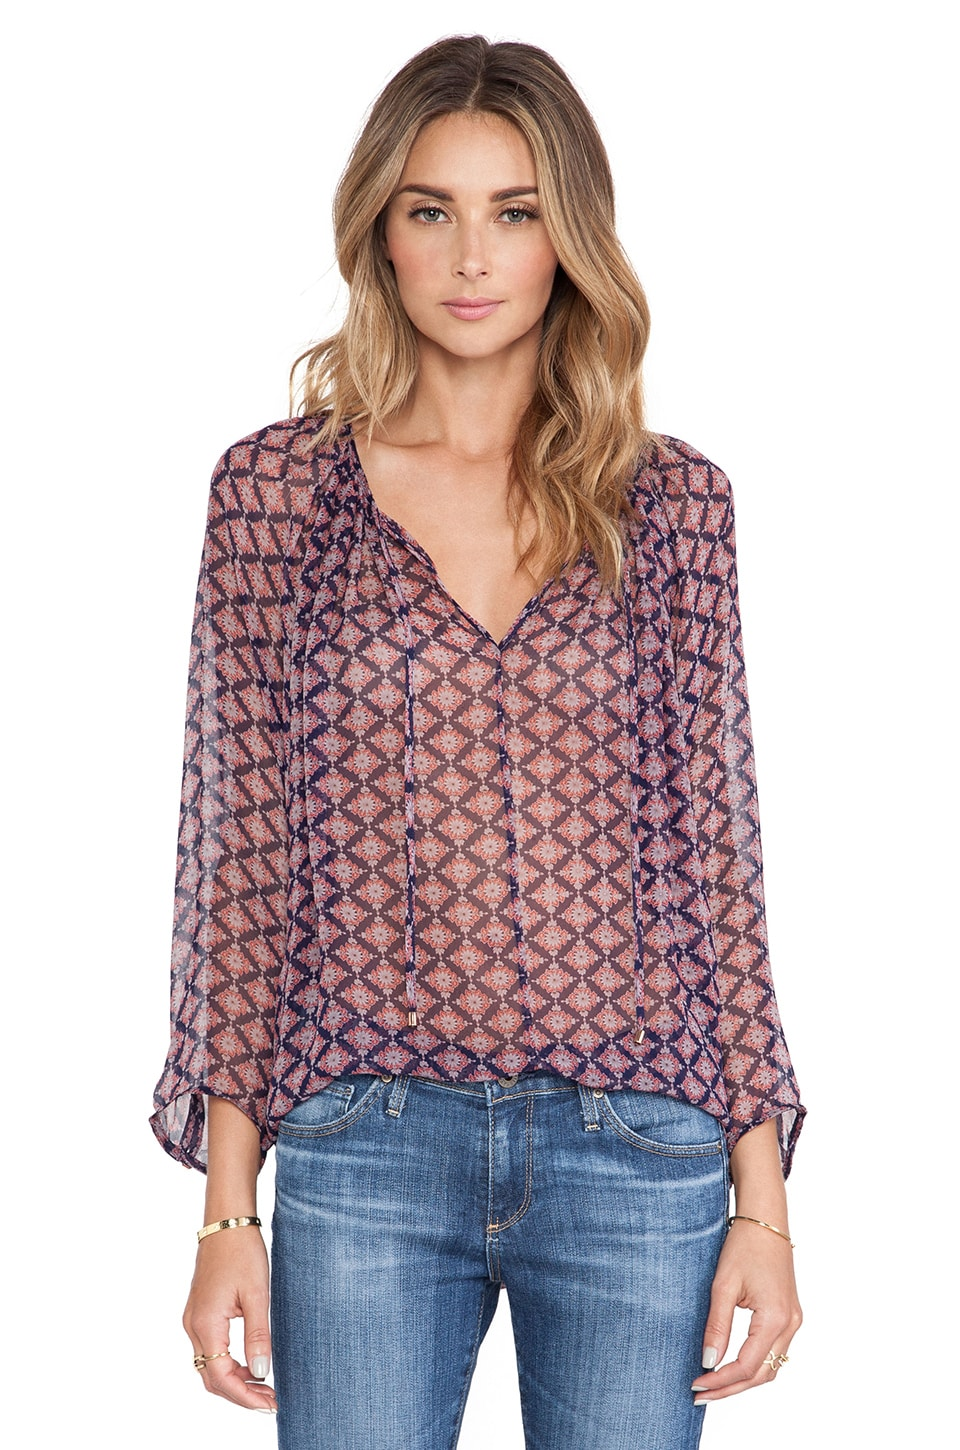 Ella Moss Marigold Blouse in Navy